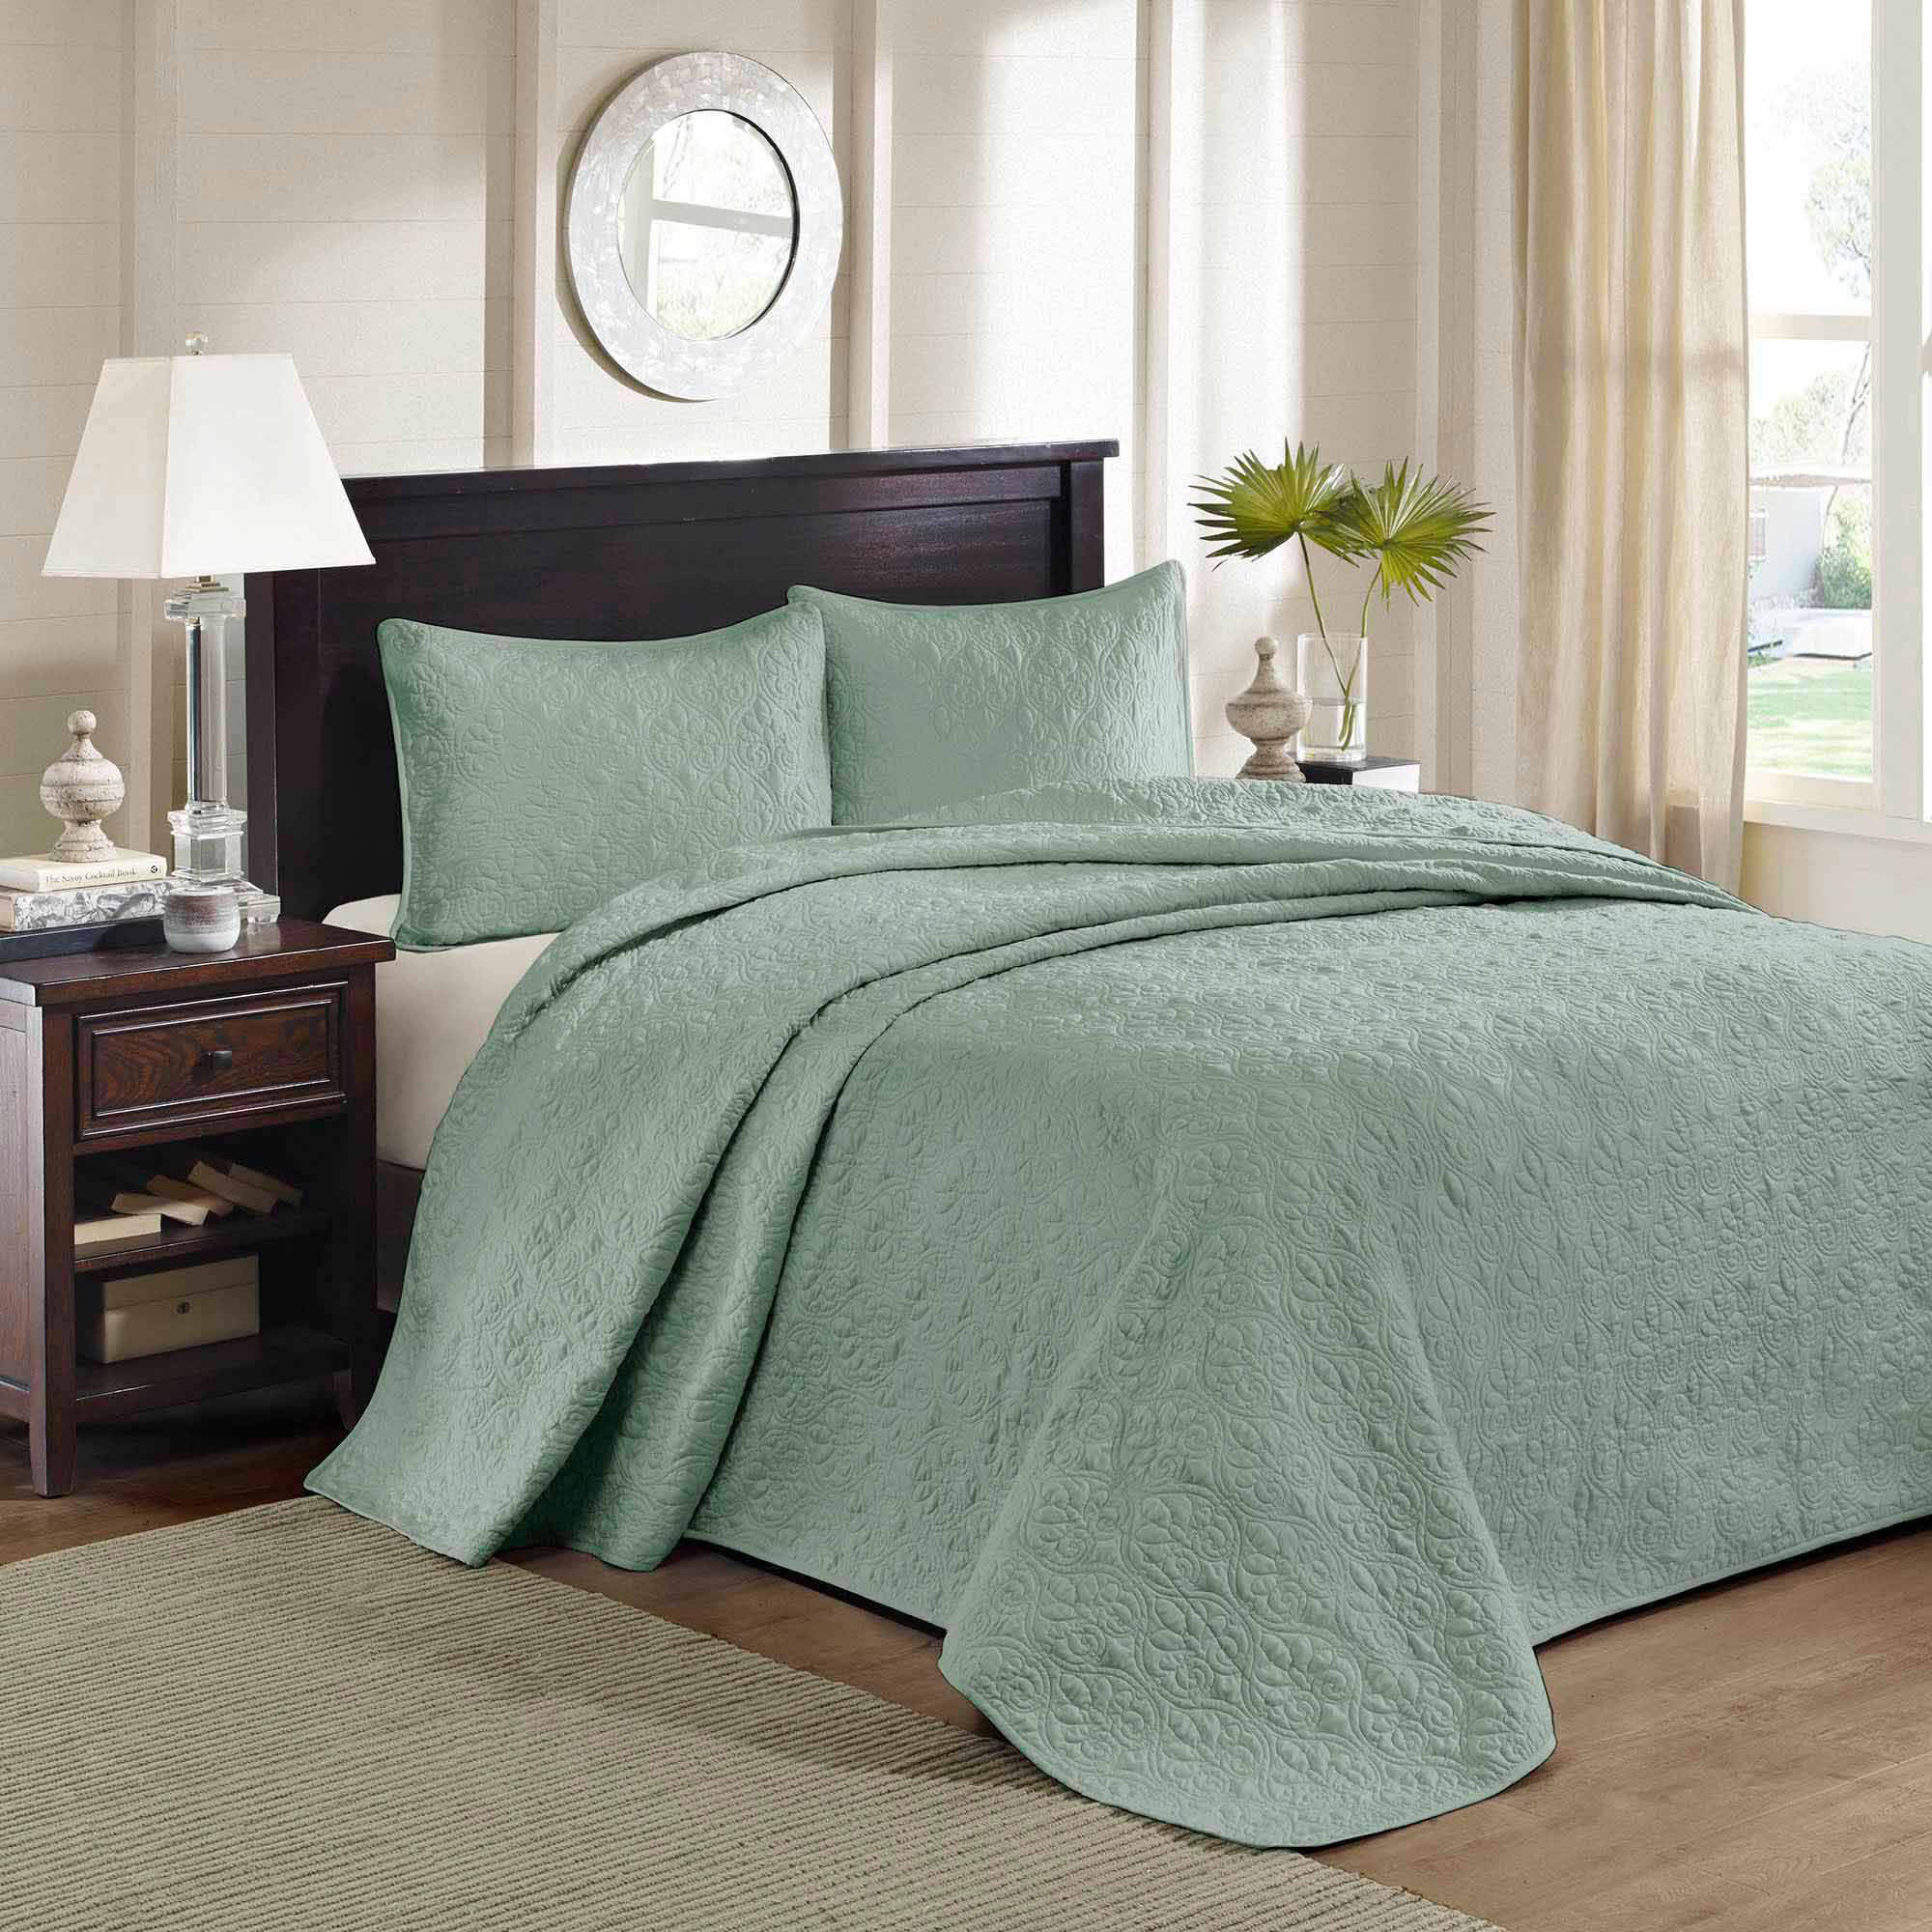 Home Essence Vancouver 3-Piece Bedspread Set